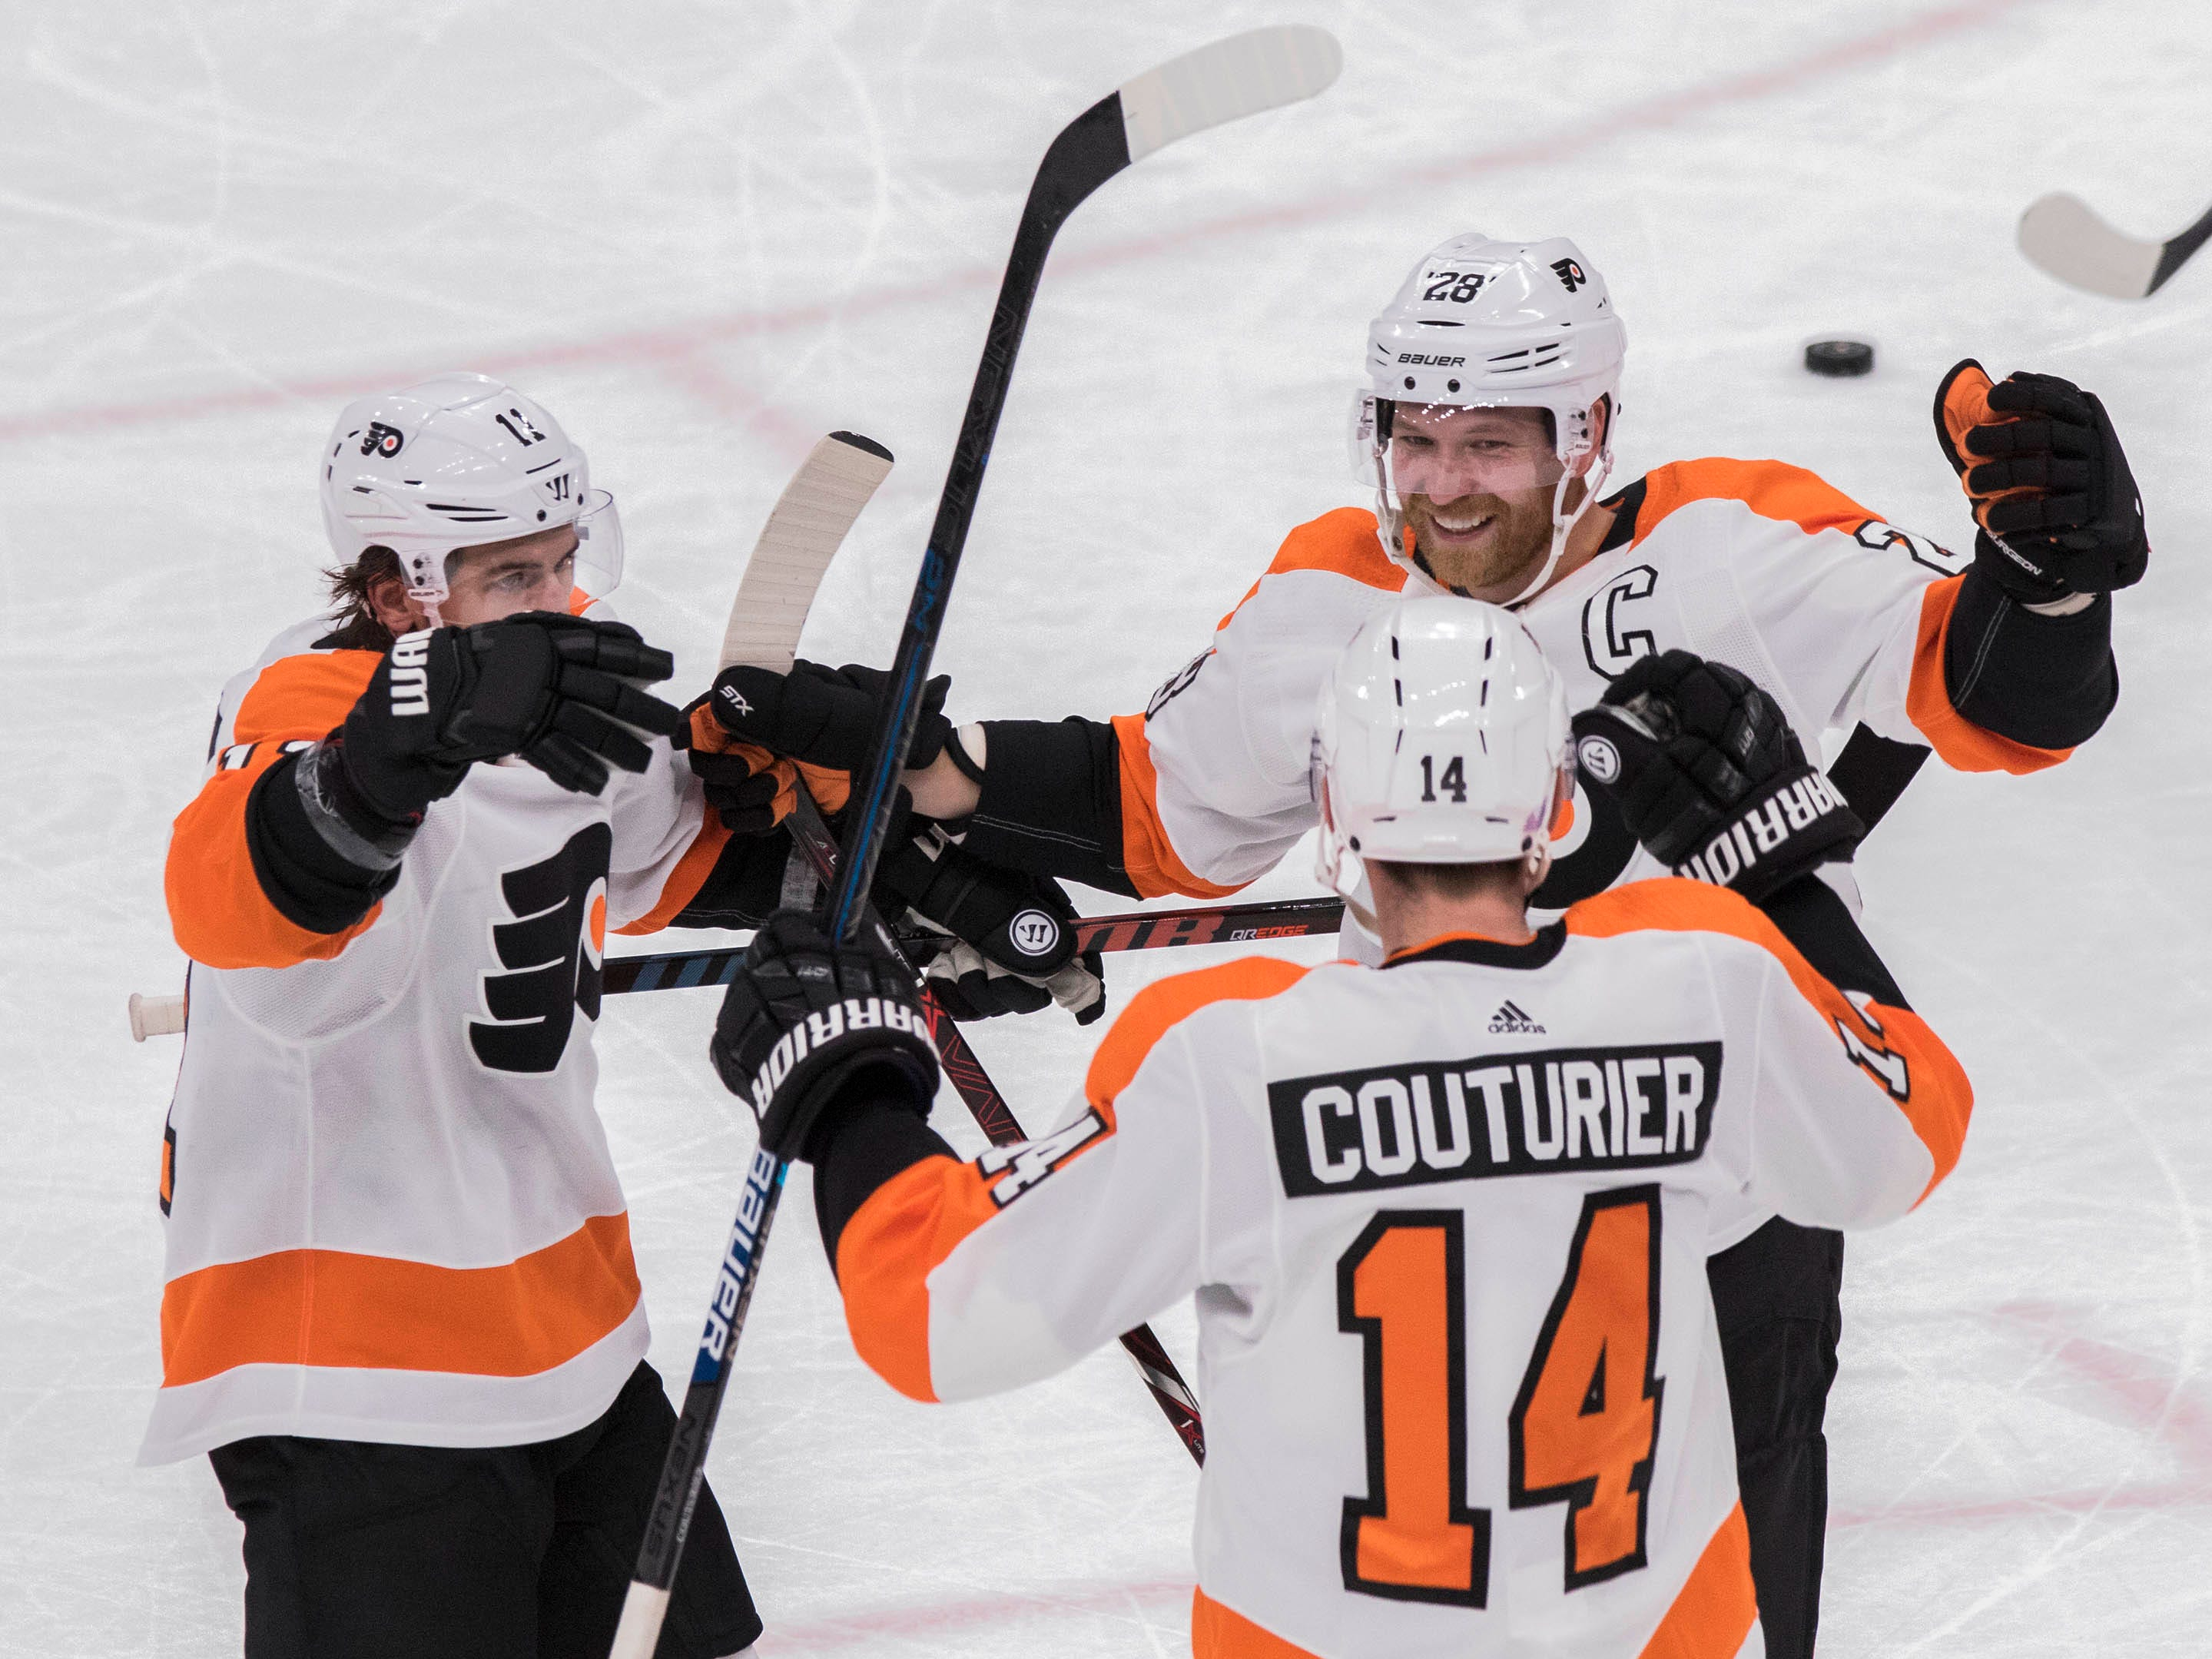 Philadelphia Flyers' Travis Konecny (11) Claude Giroux (28) congratulate Sean Couturier (14) after he scored against the Arizona Coyotes during the second period of an NHL hockey game Monday, Nov. 5, 2018, in Glendale, Ariz. (AP Photo/Darryl Webb)